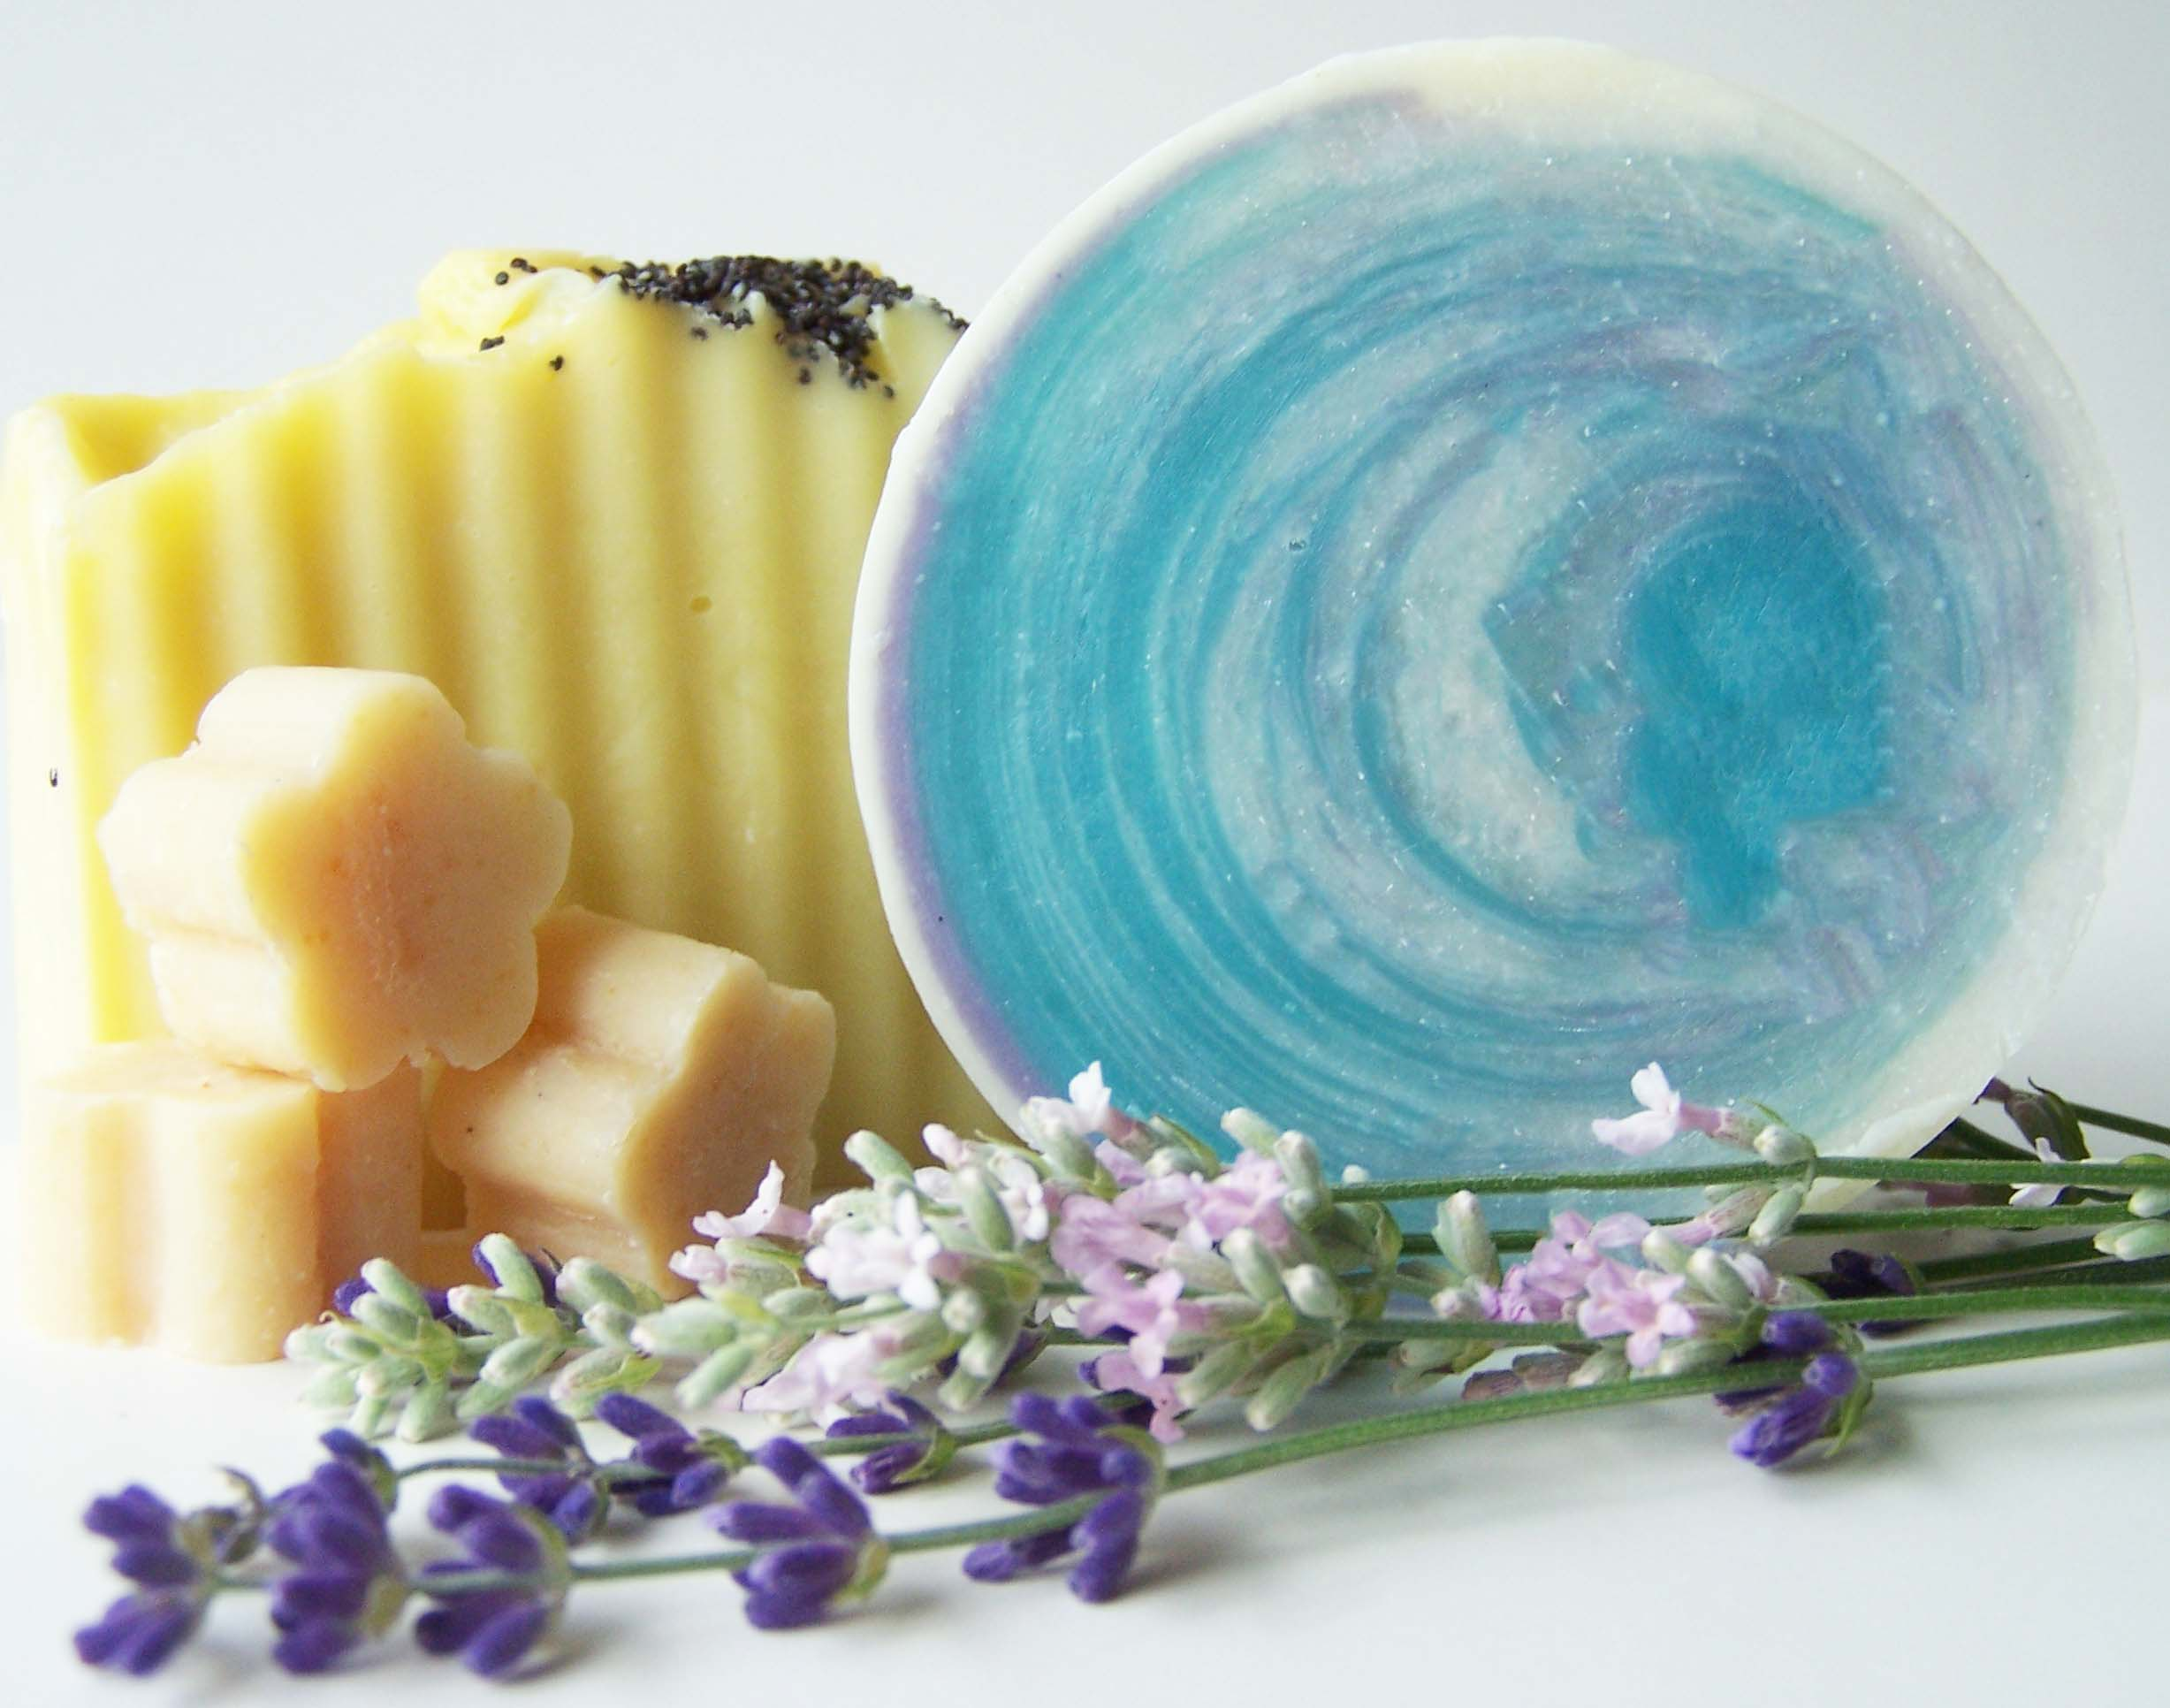 Chia pet herb garden - Vermont Lavender Sells Sugars Teas Jelly And Handmade Soaps